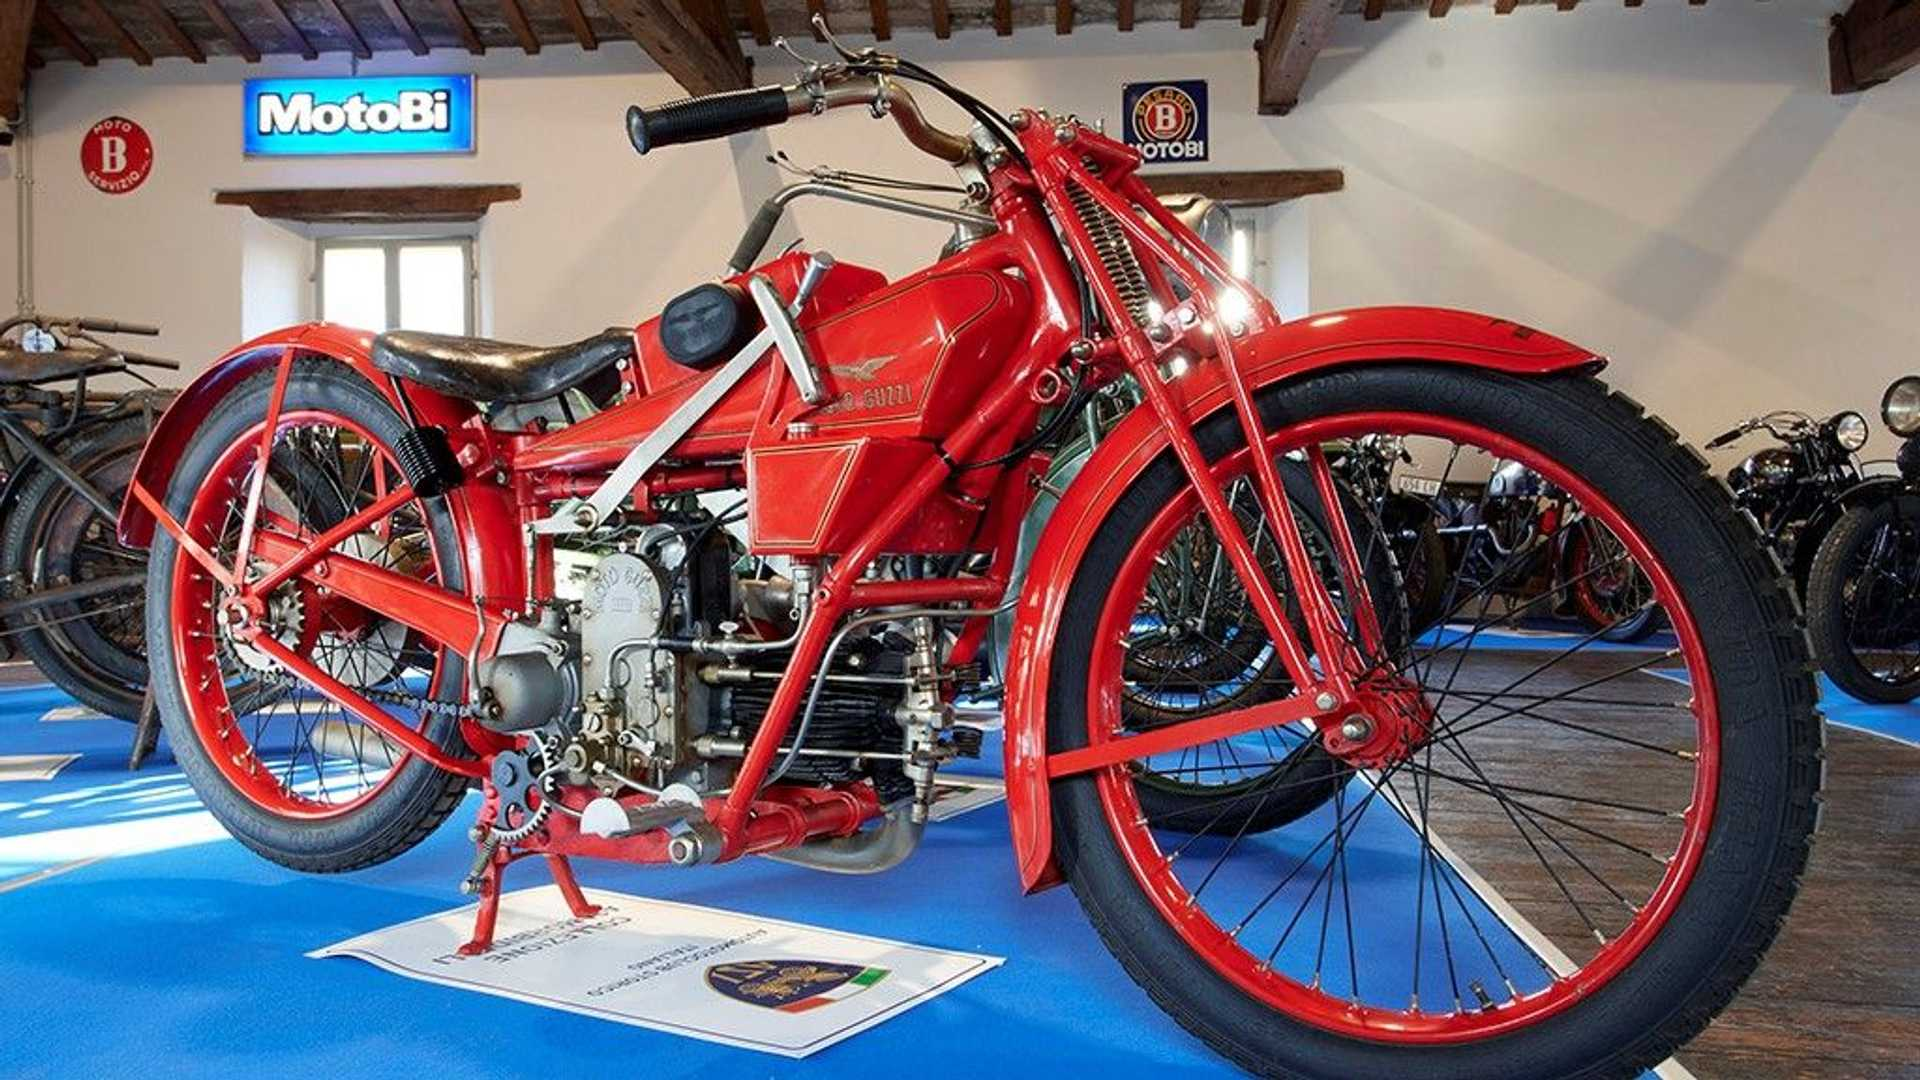 An image from inside the Benelli Museum in Pesaro, Italy